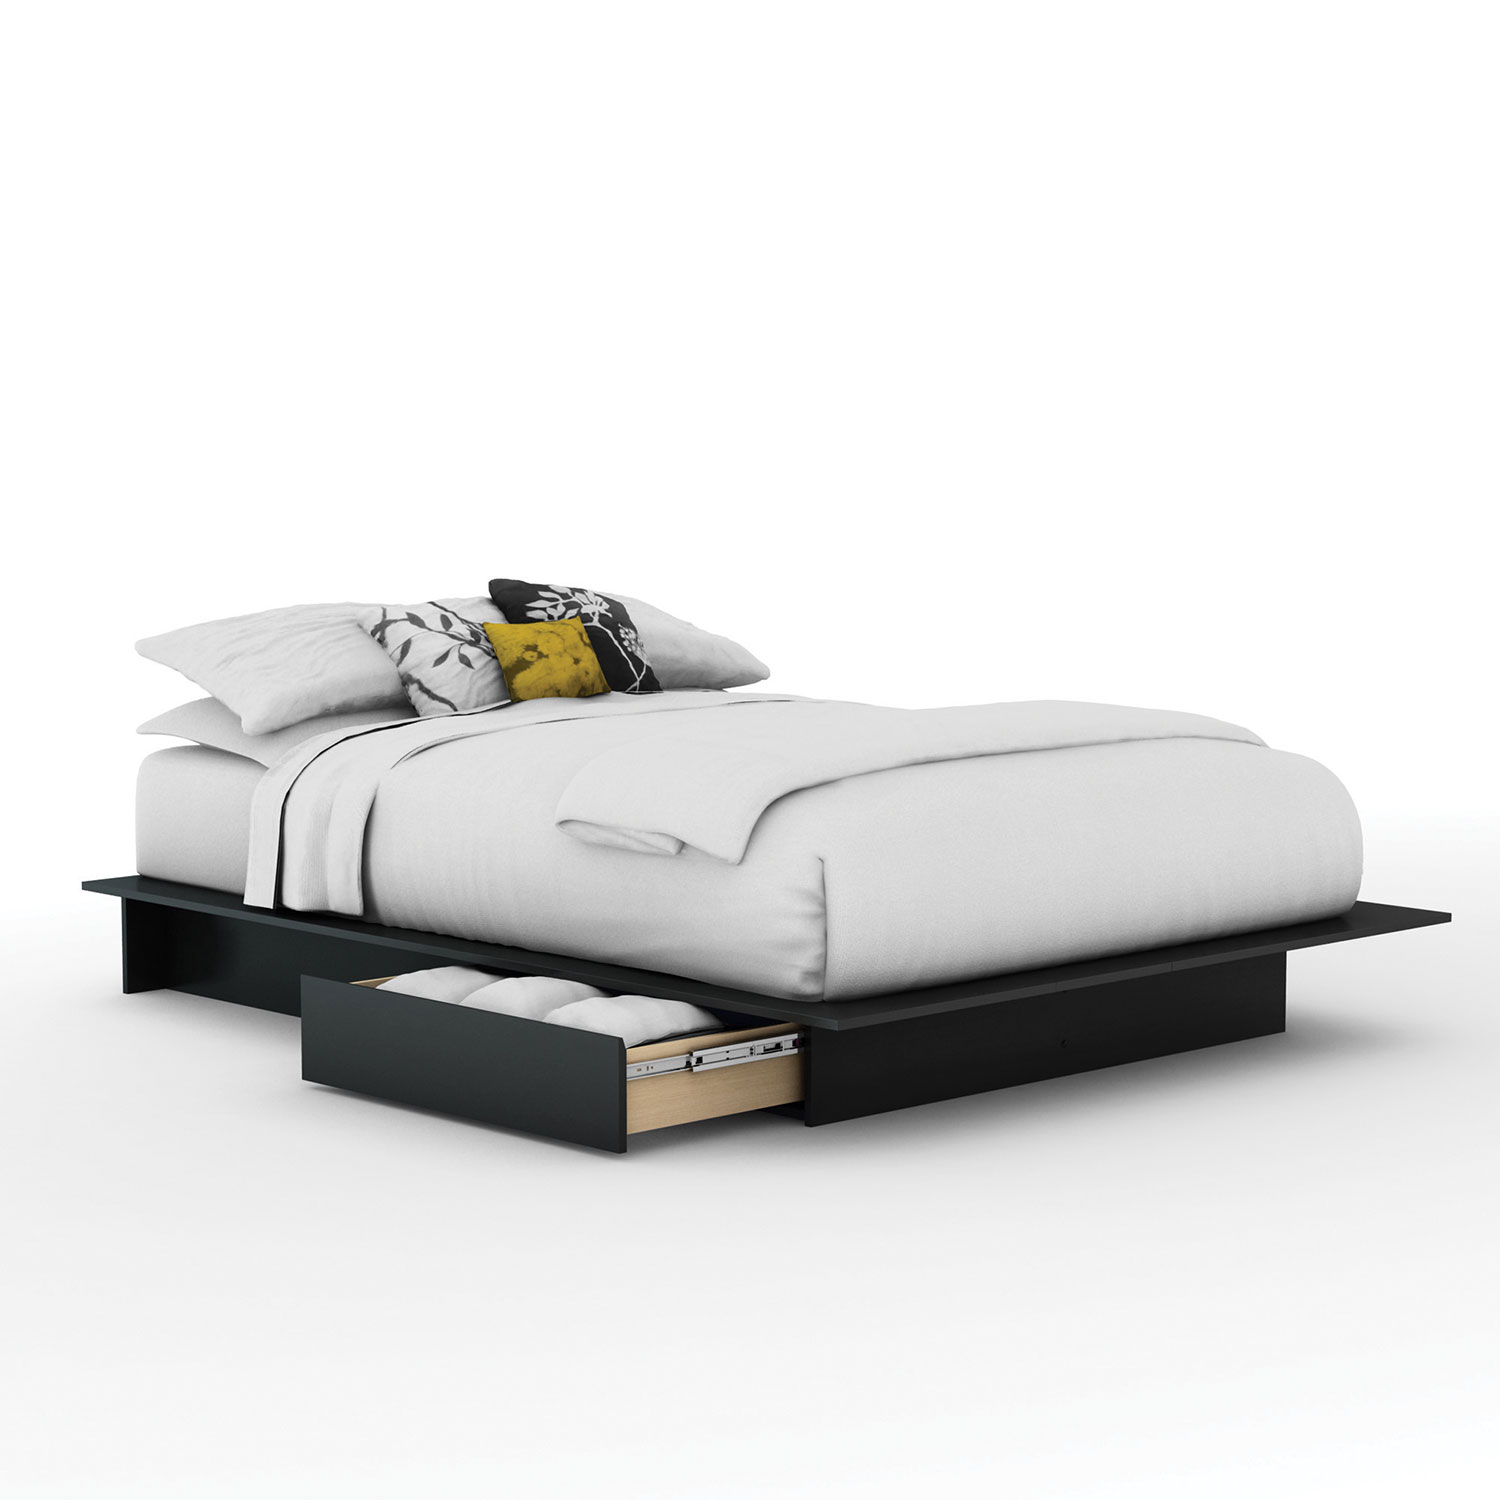 Step One Contemporary Storage Bed - Queen - Black : Beds & Bed ...